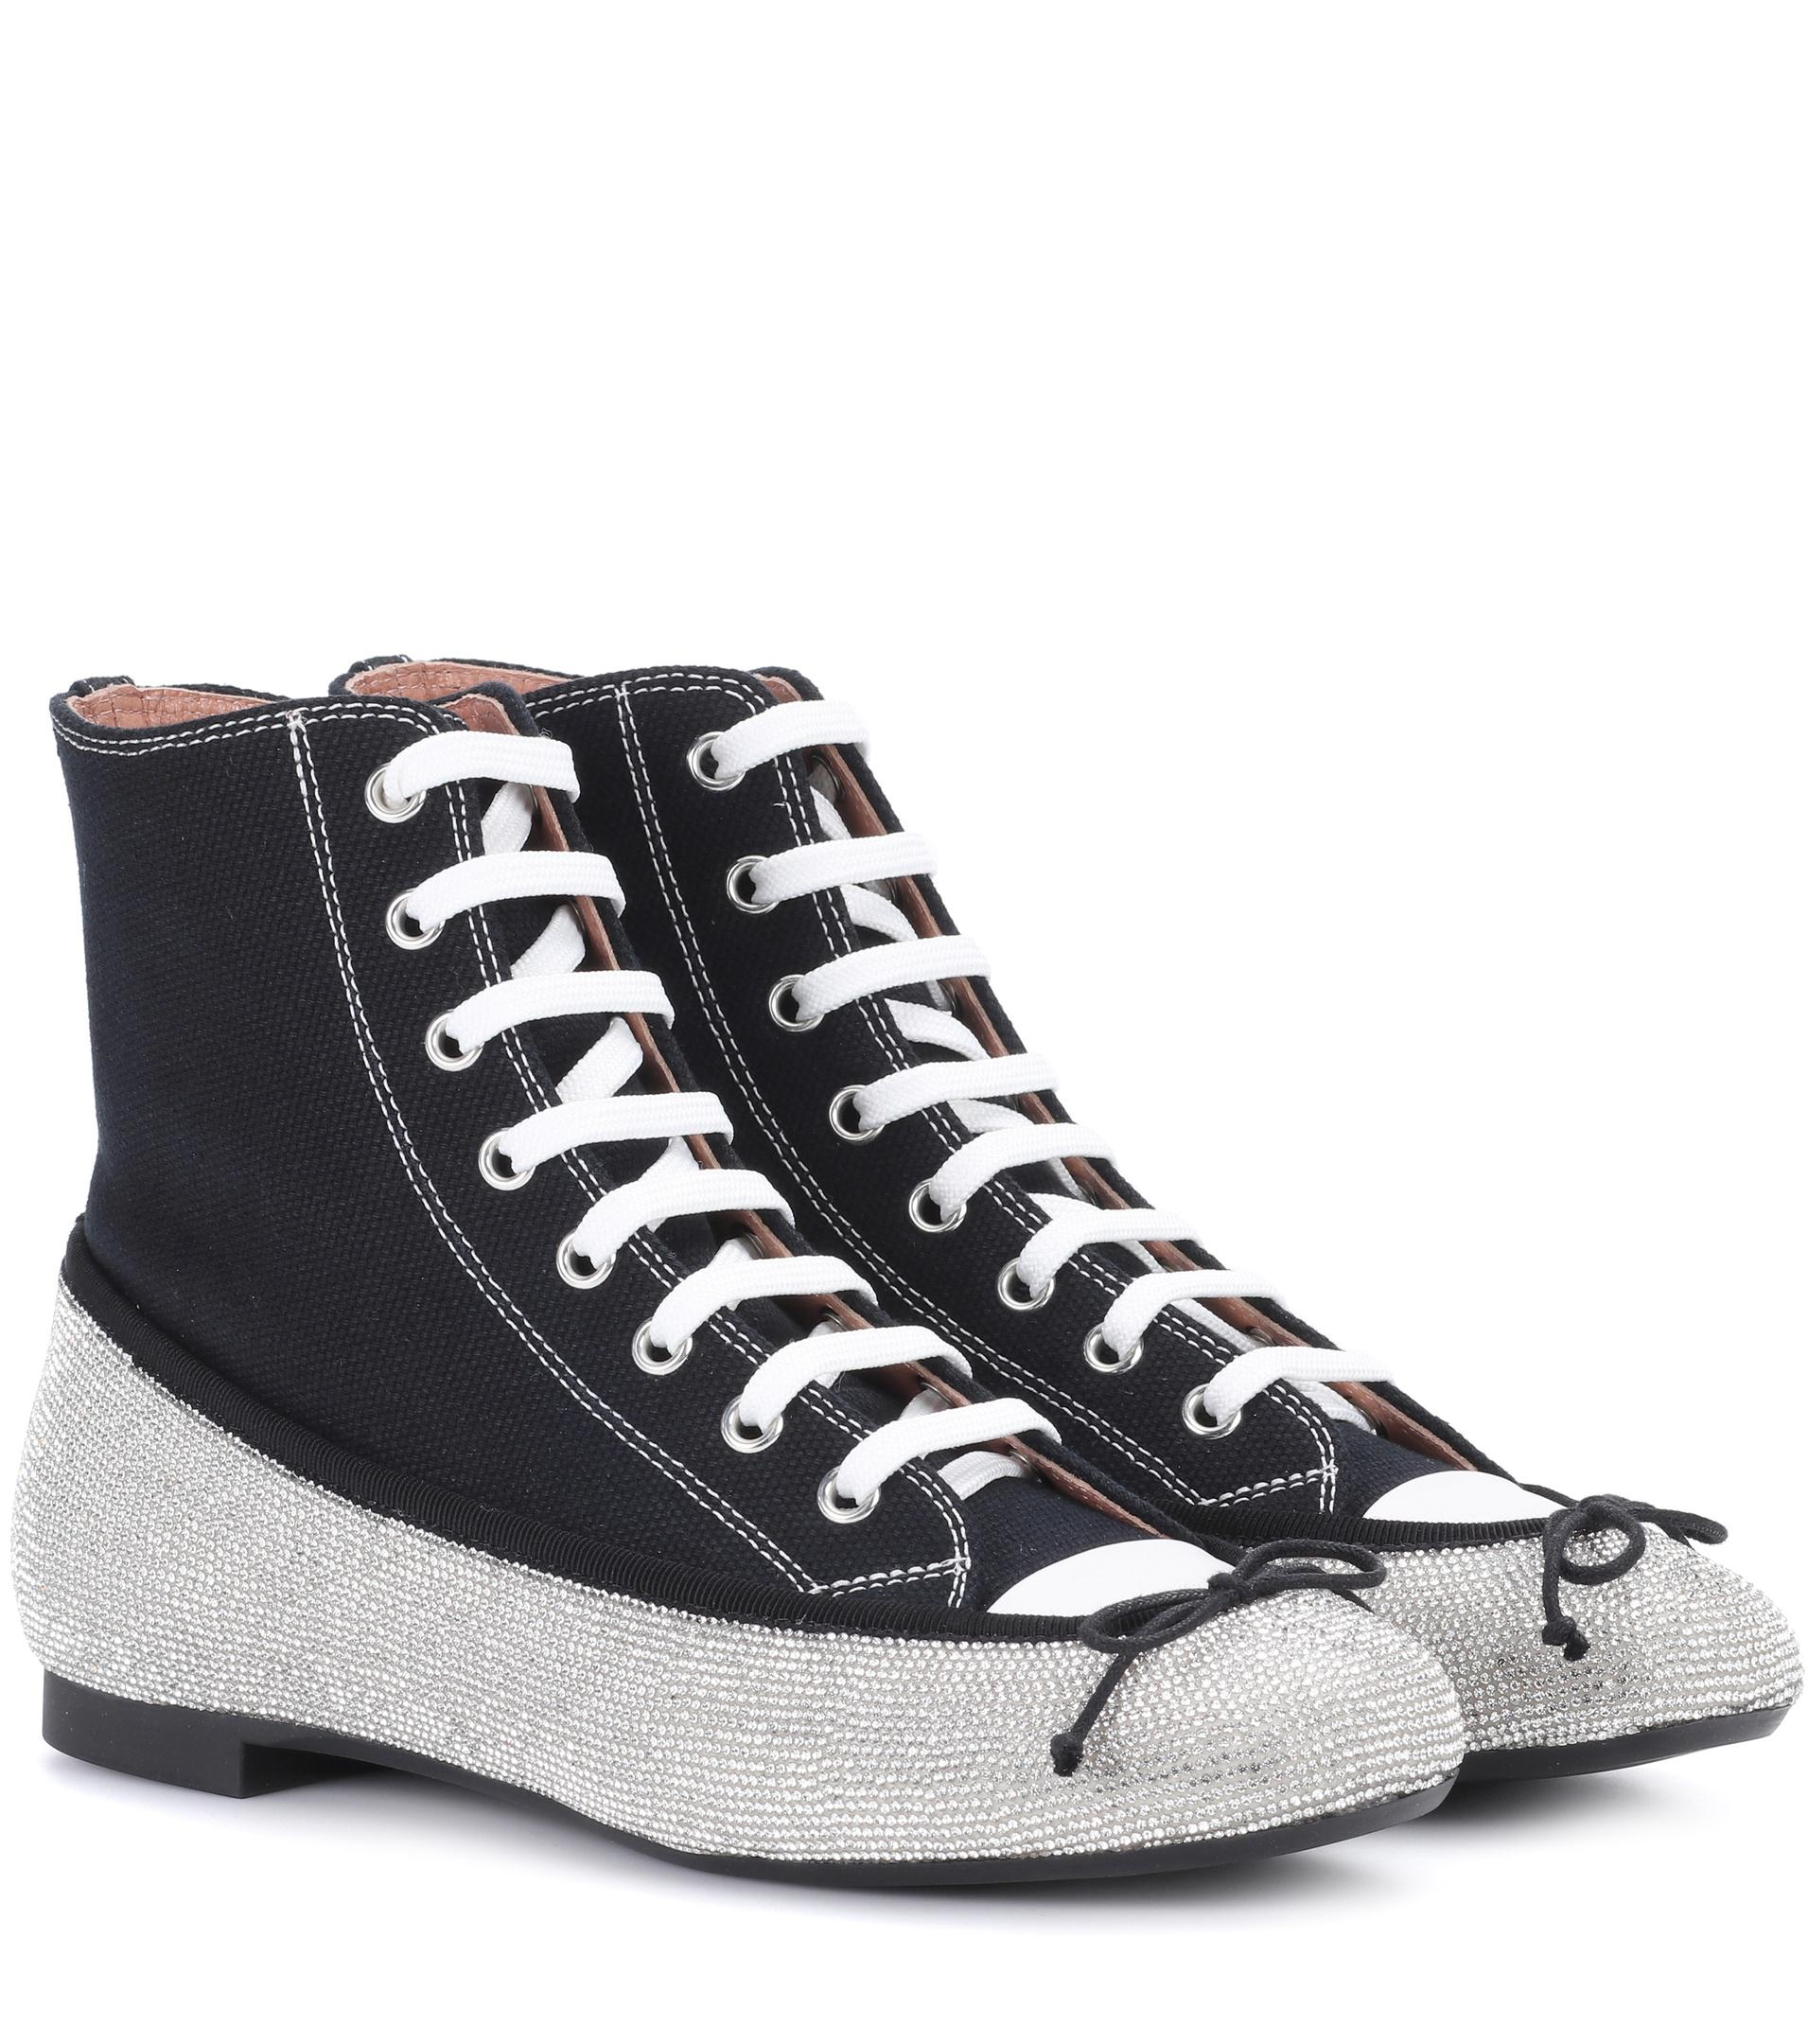 MARCO DE VINCENZO Leather sneakers Clearance Store Cheap Price Buy Cheap 100% Guaranteed Official Site Sale Online ZDDm6